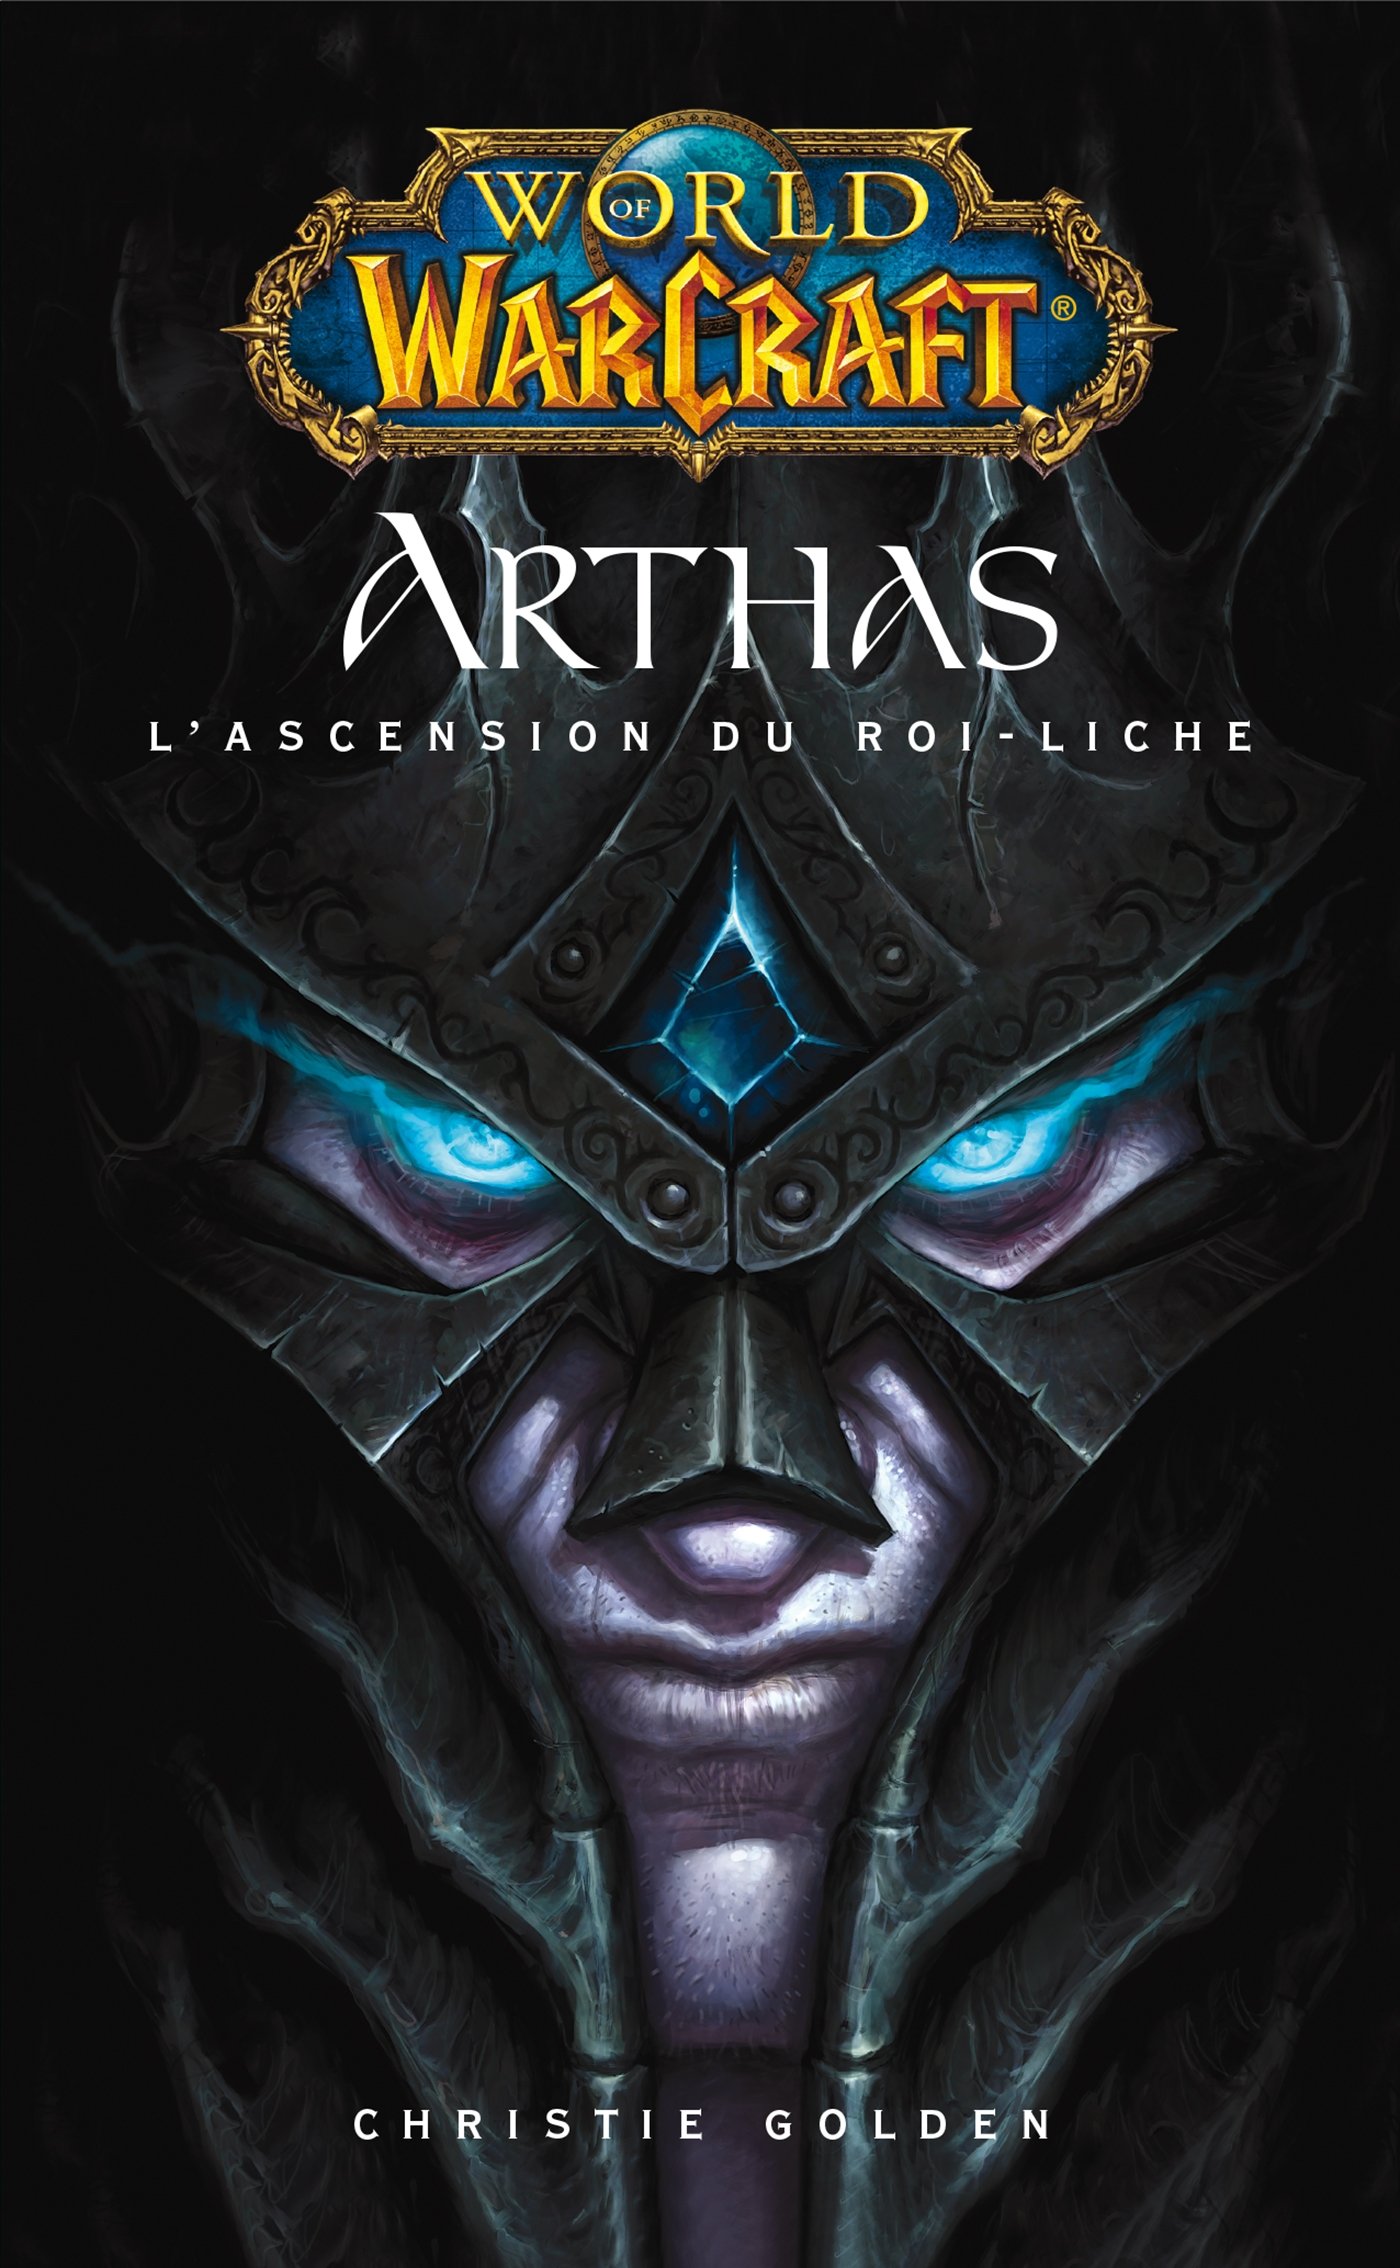 World of Warcraft - Arthas l'ascension du roi-Liche